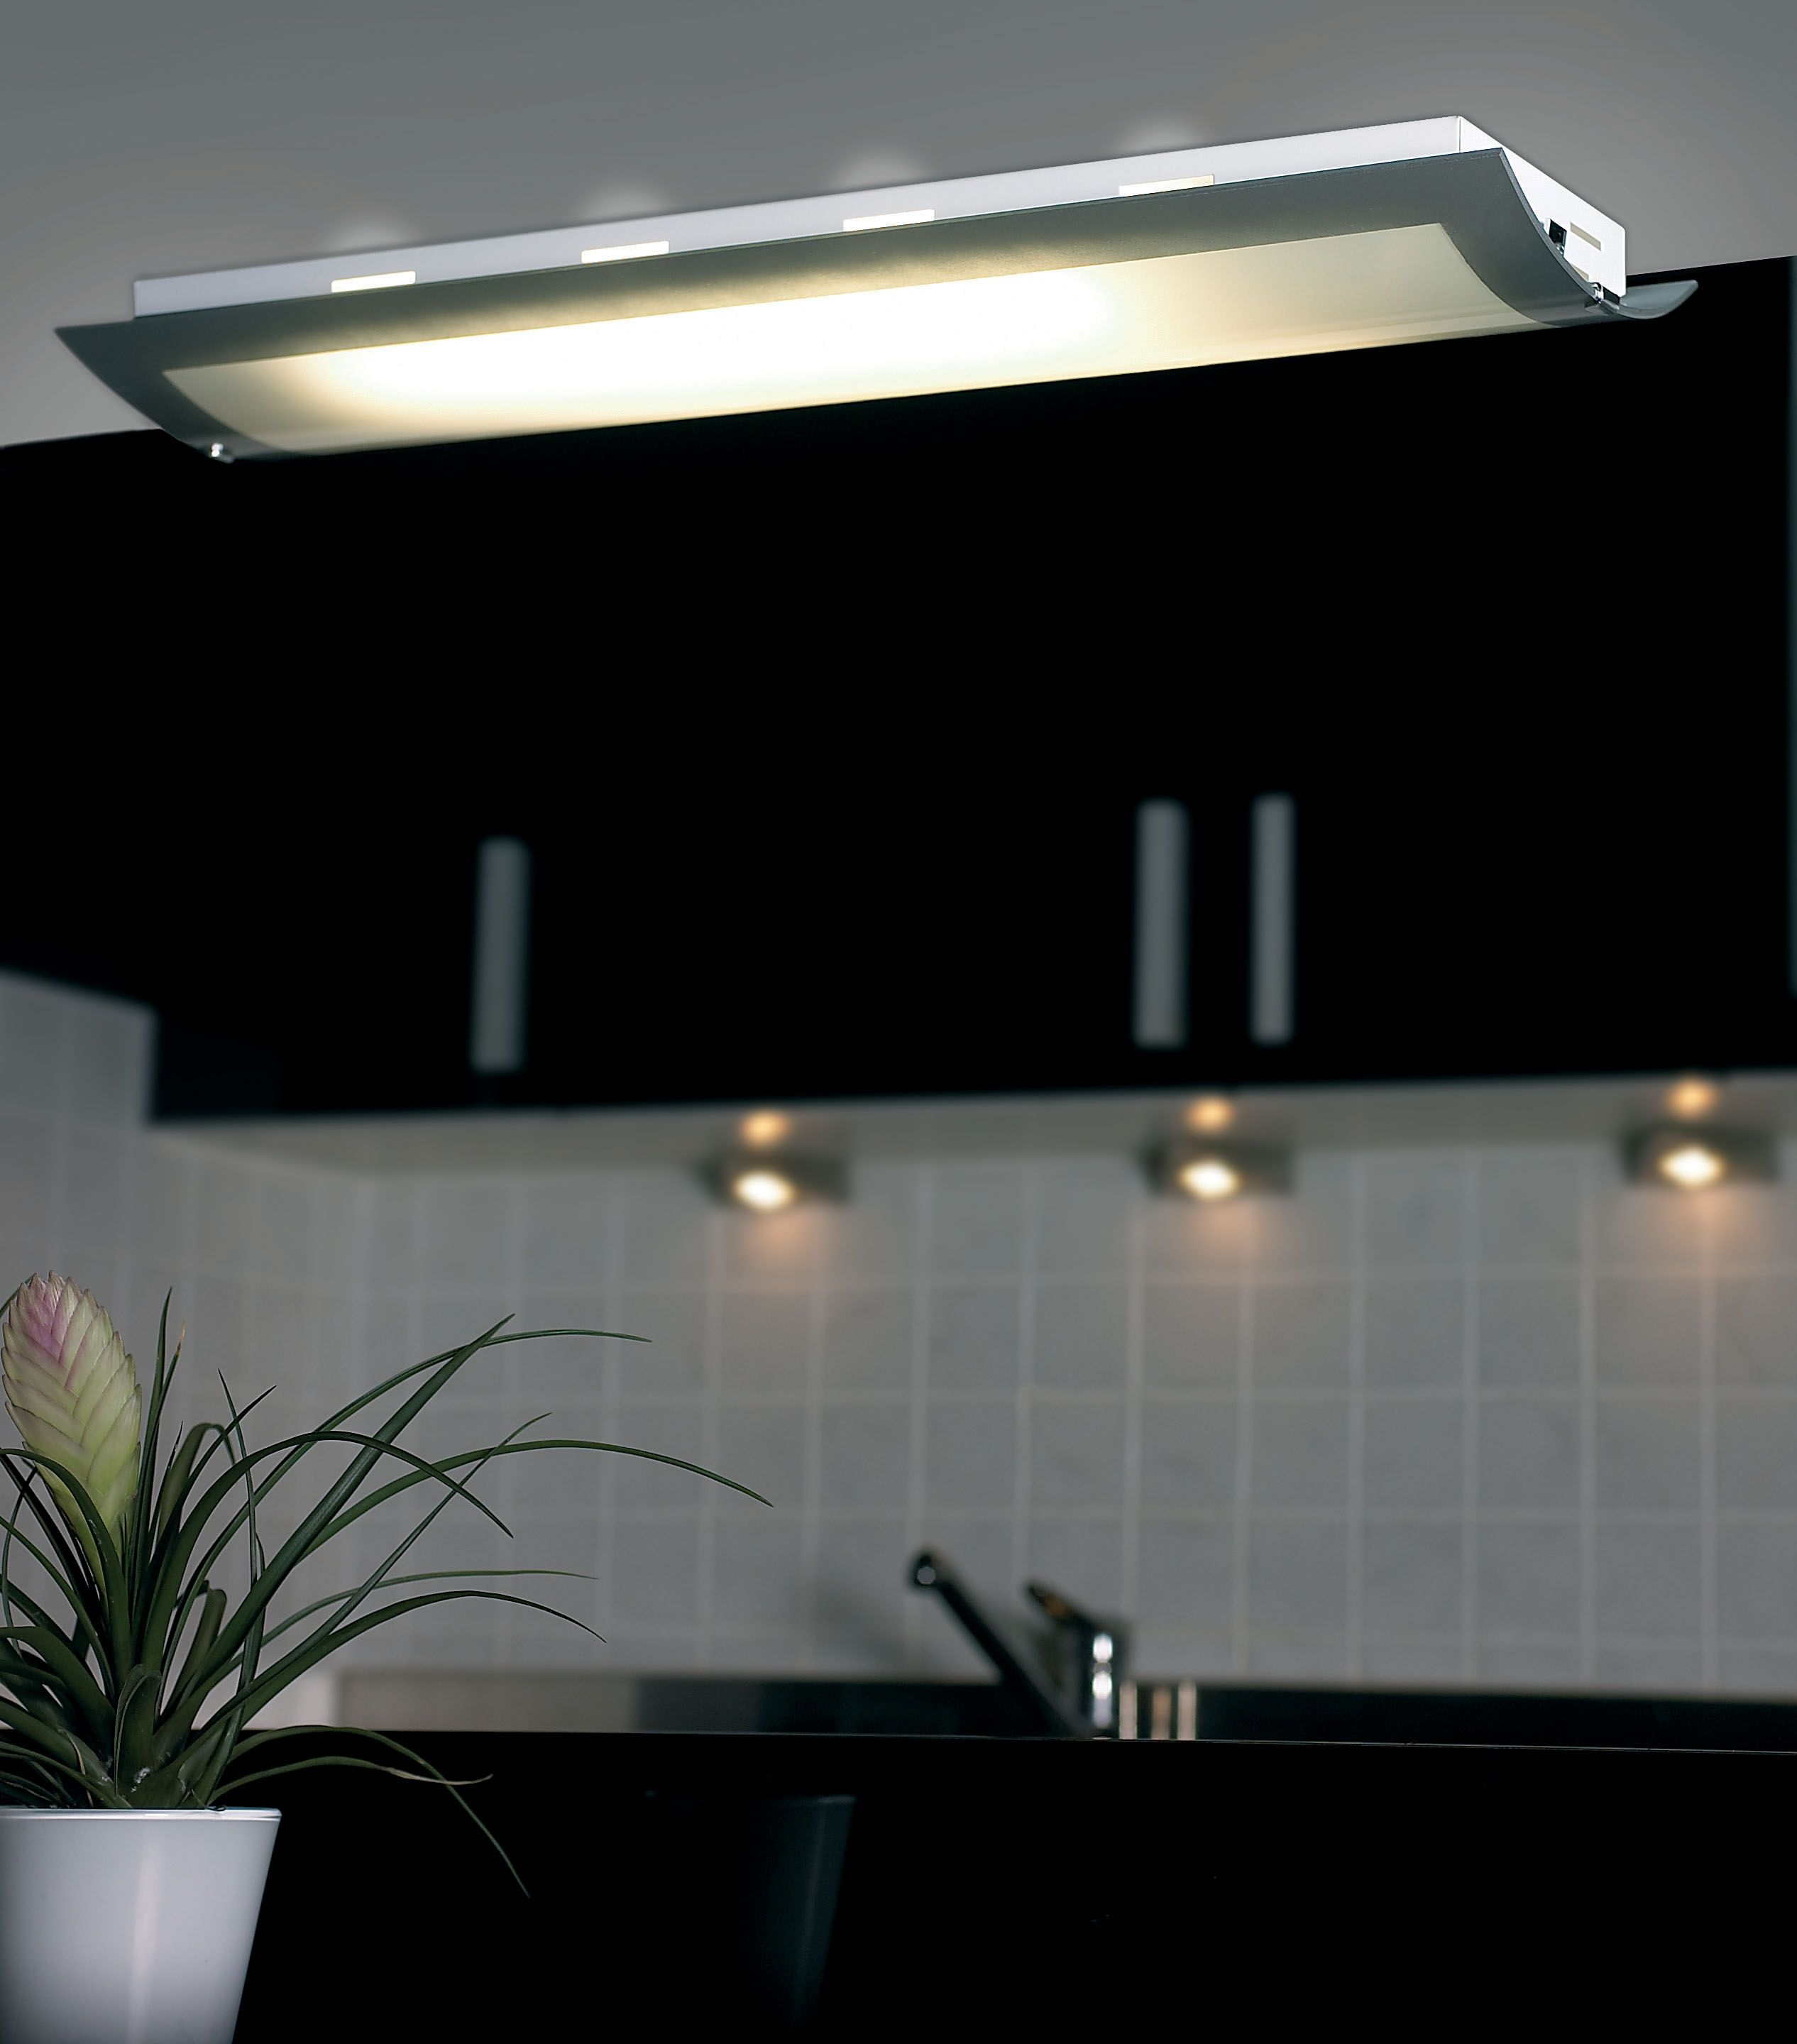 kitchen fixtures led light rajasweetshouston beautiful of lighting luxury cabinet